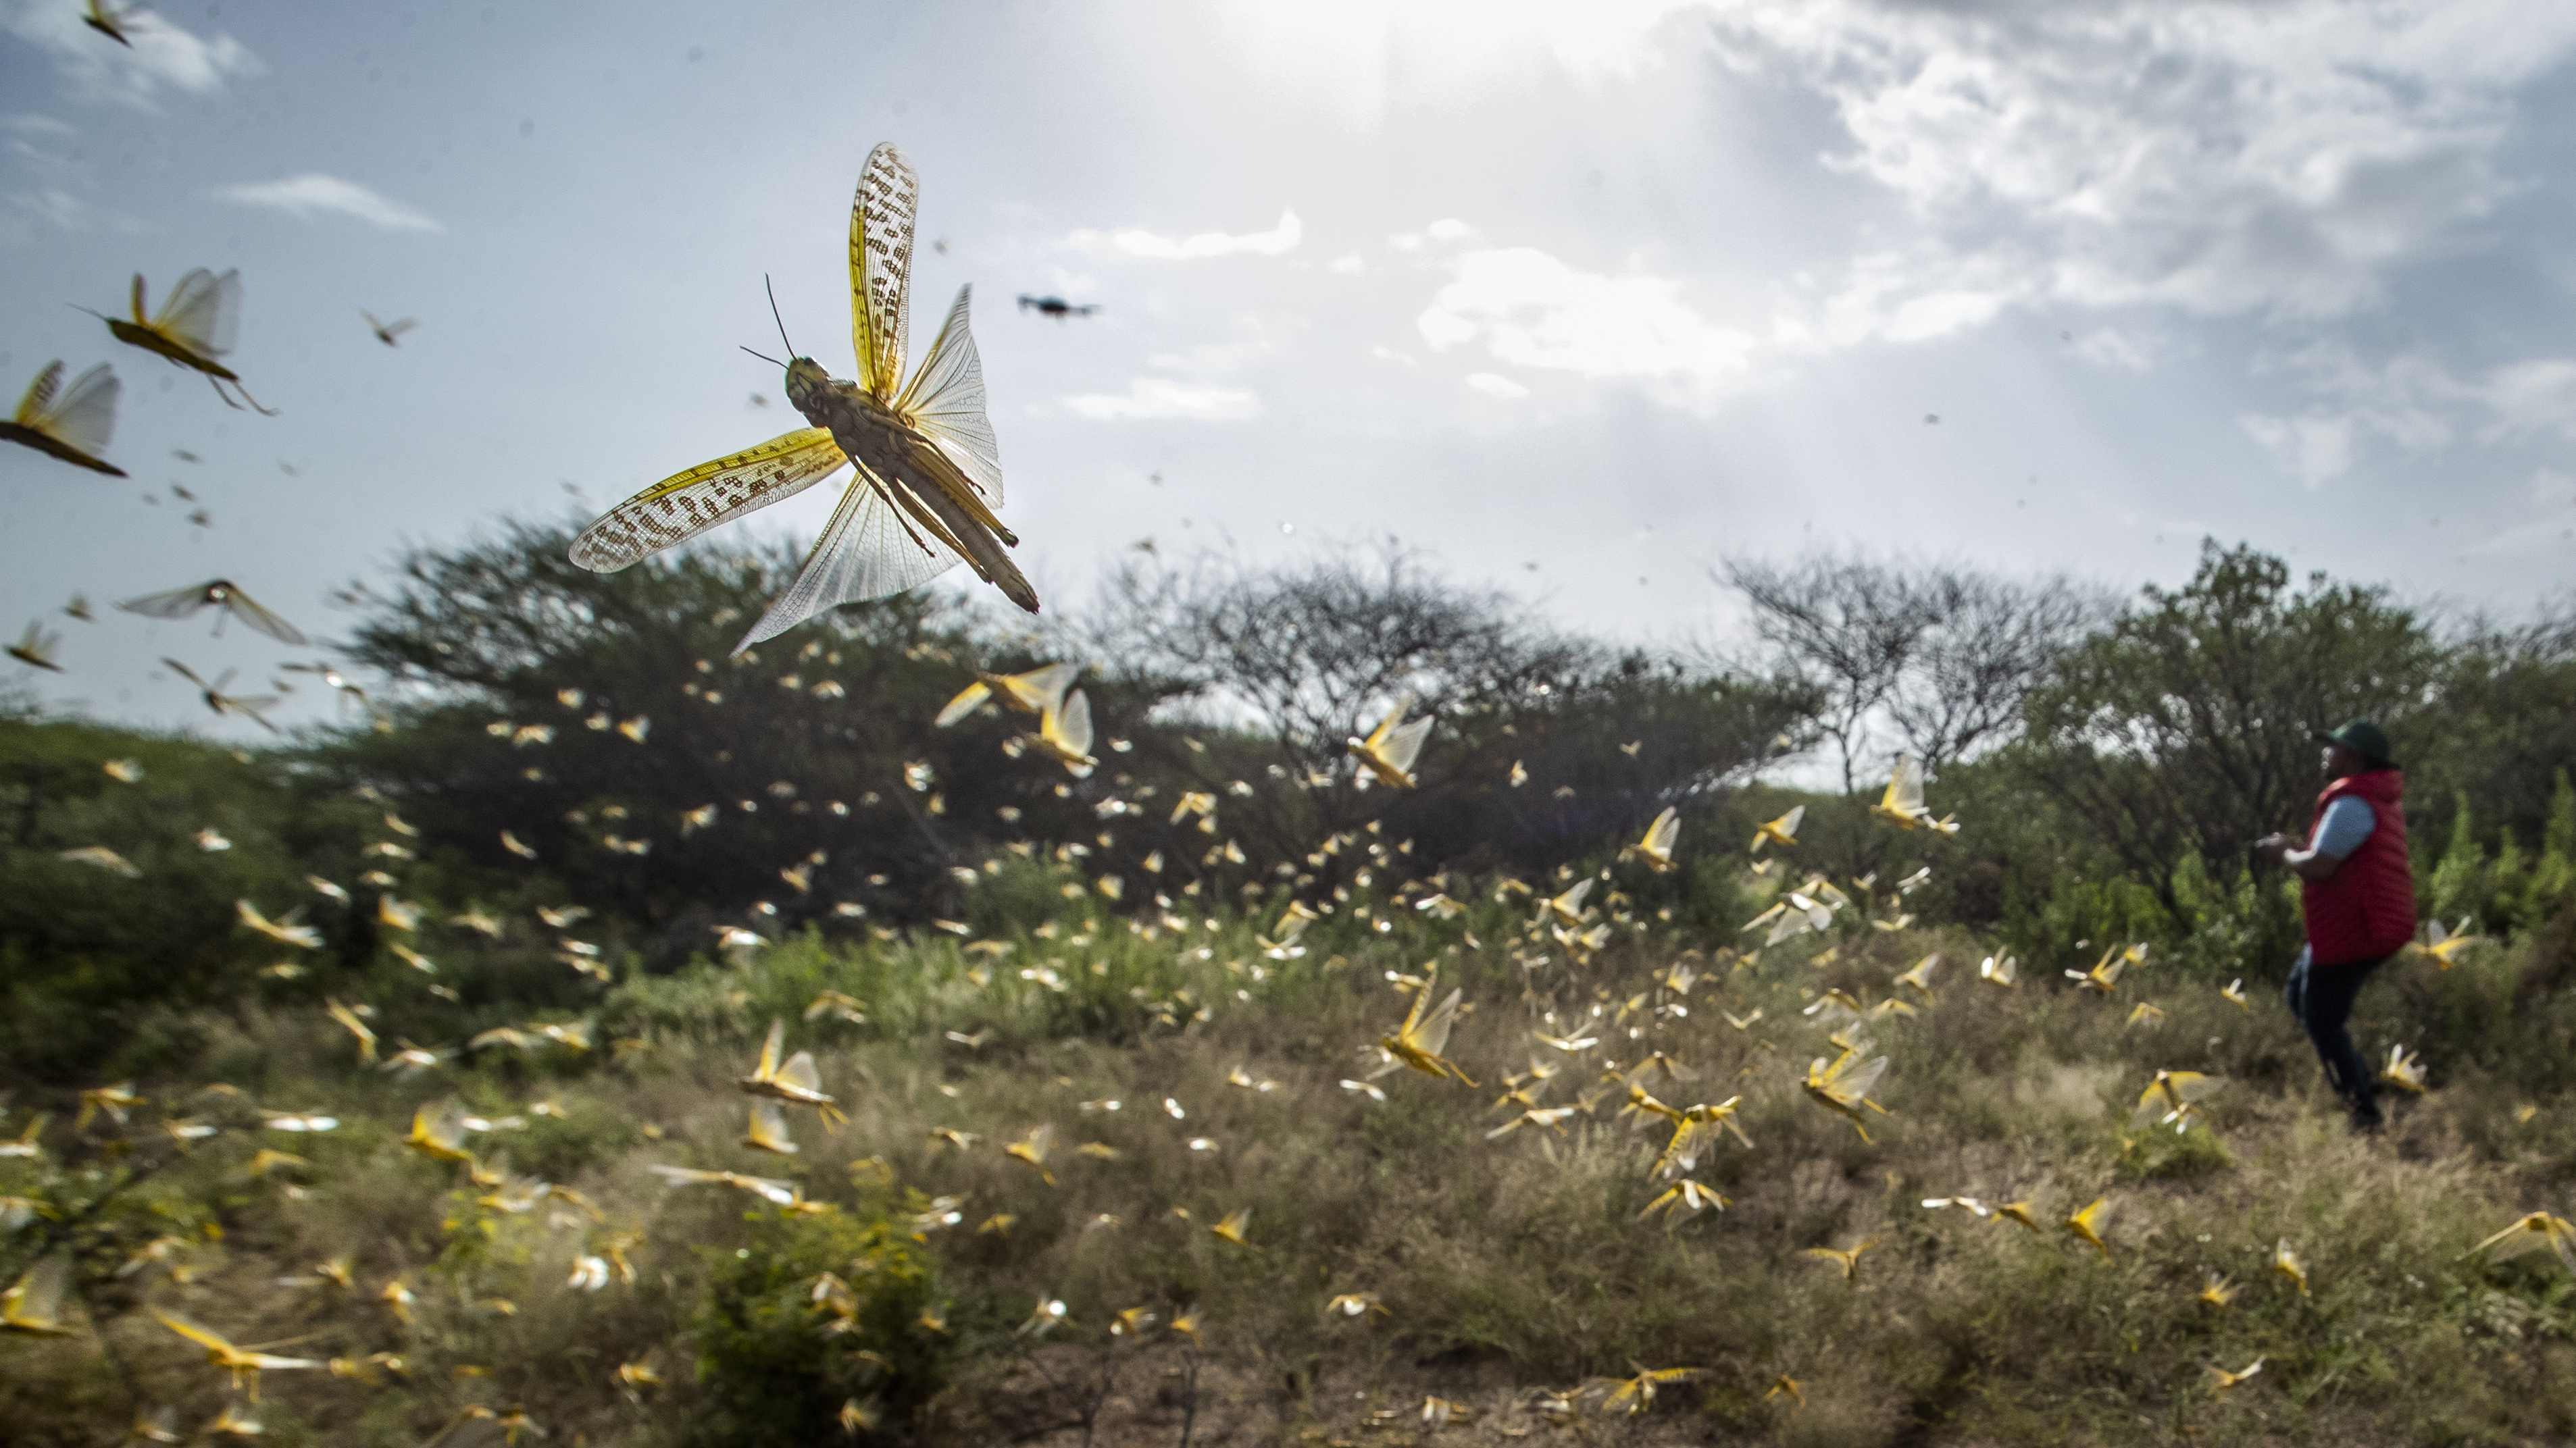 Why Are Swarms Of Locusts Wreaking Havoc In East Africa?